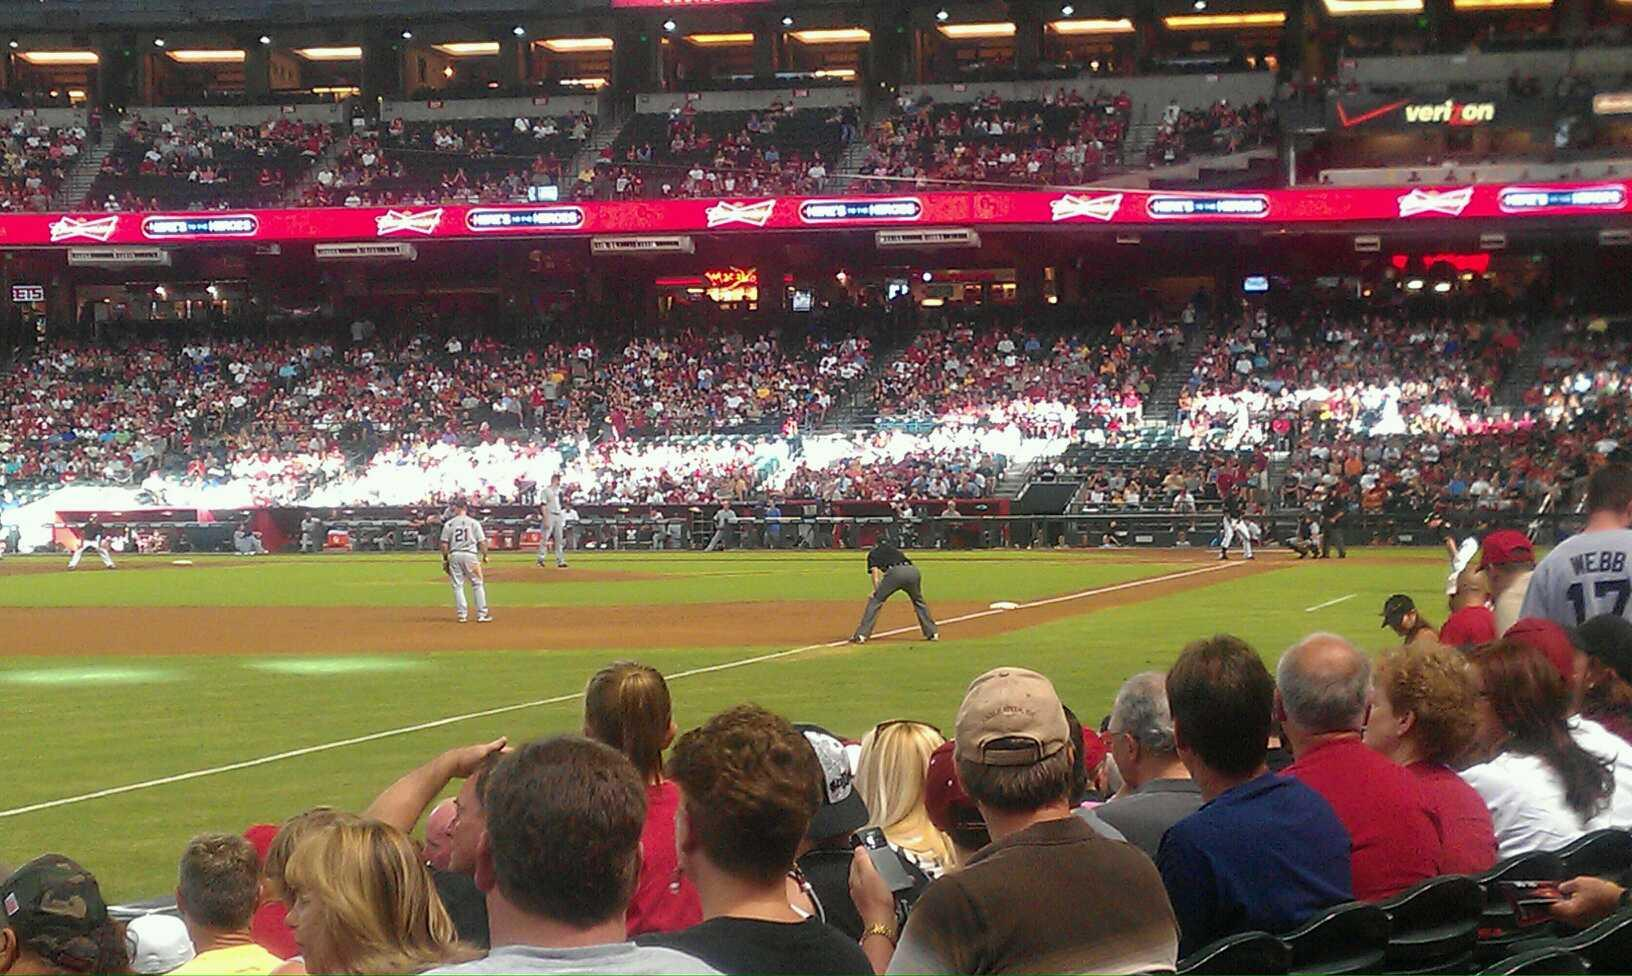 Chase Field Section 134 Row 9 Seat 1